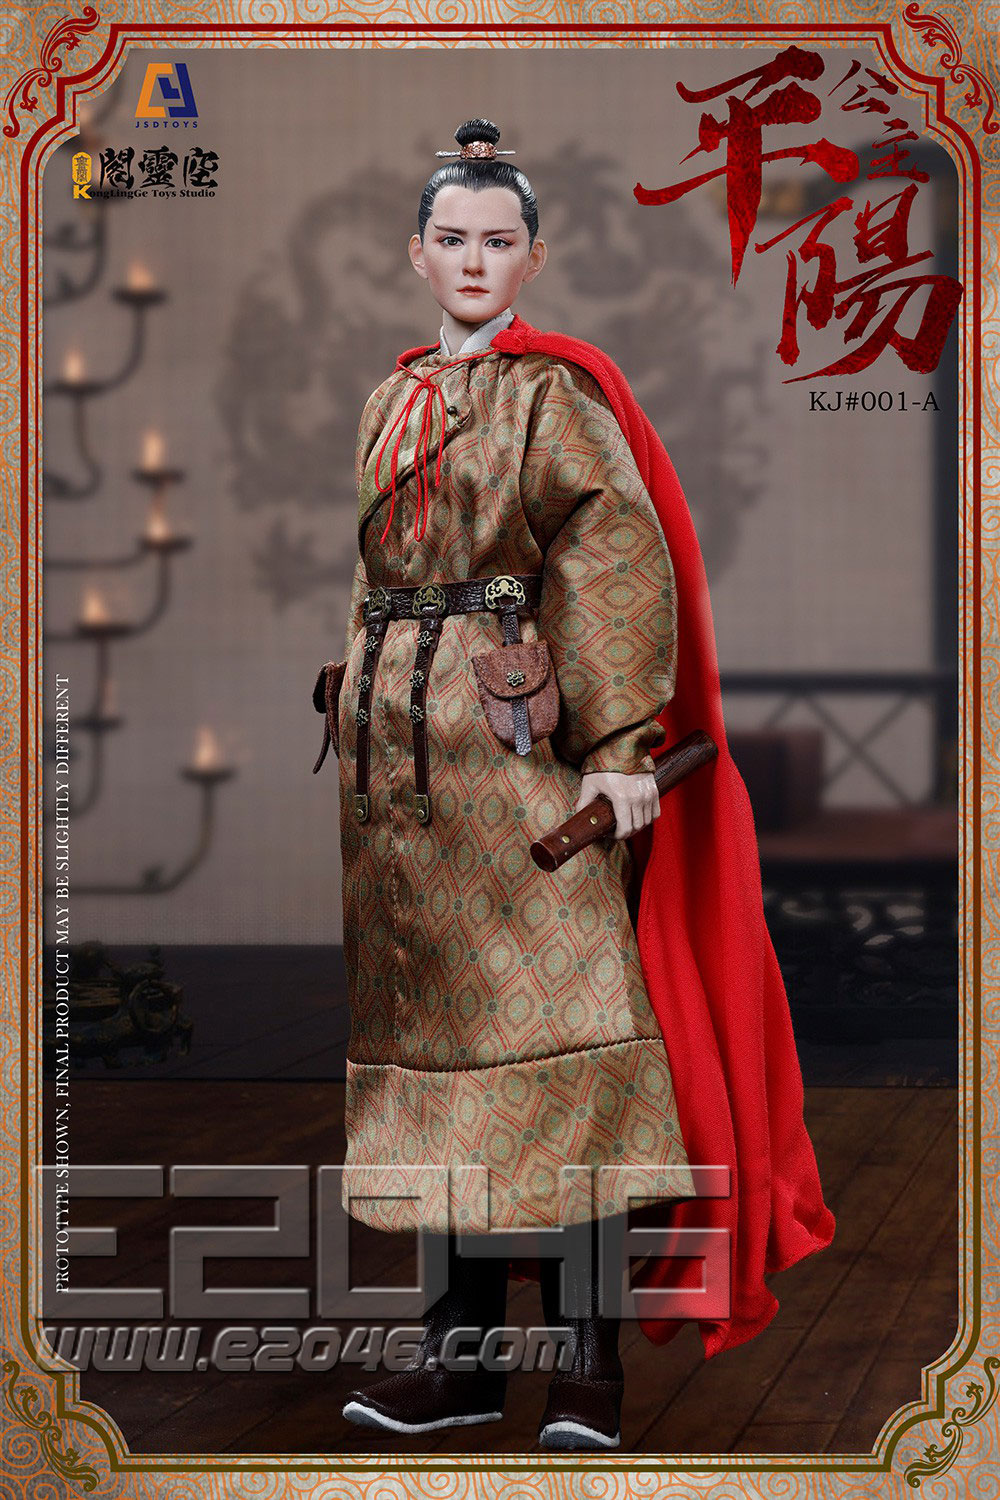 Li Xiuning Regular Version (DOLL)